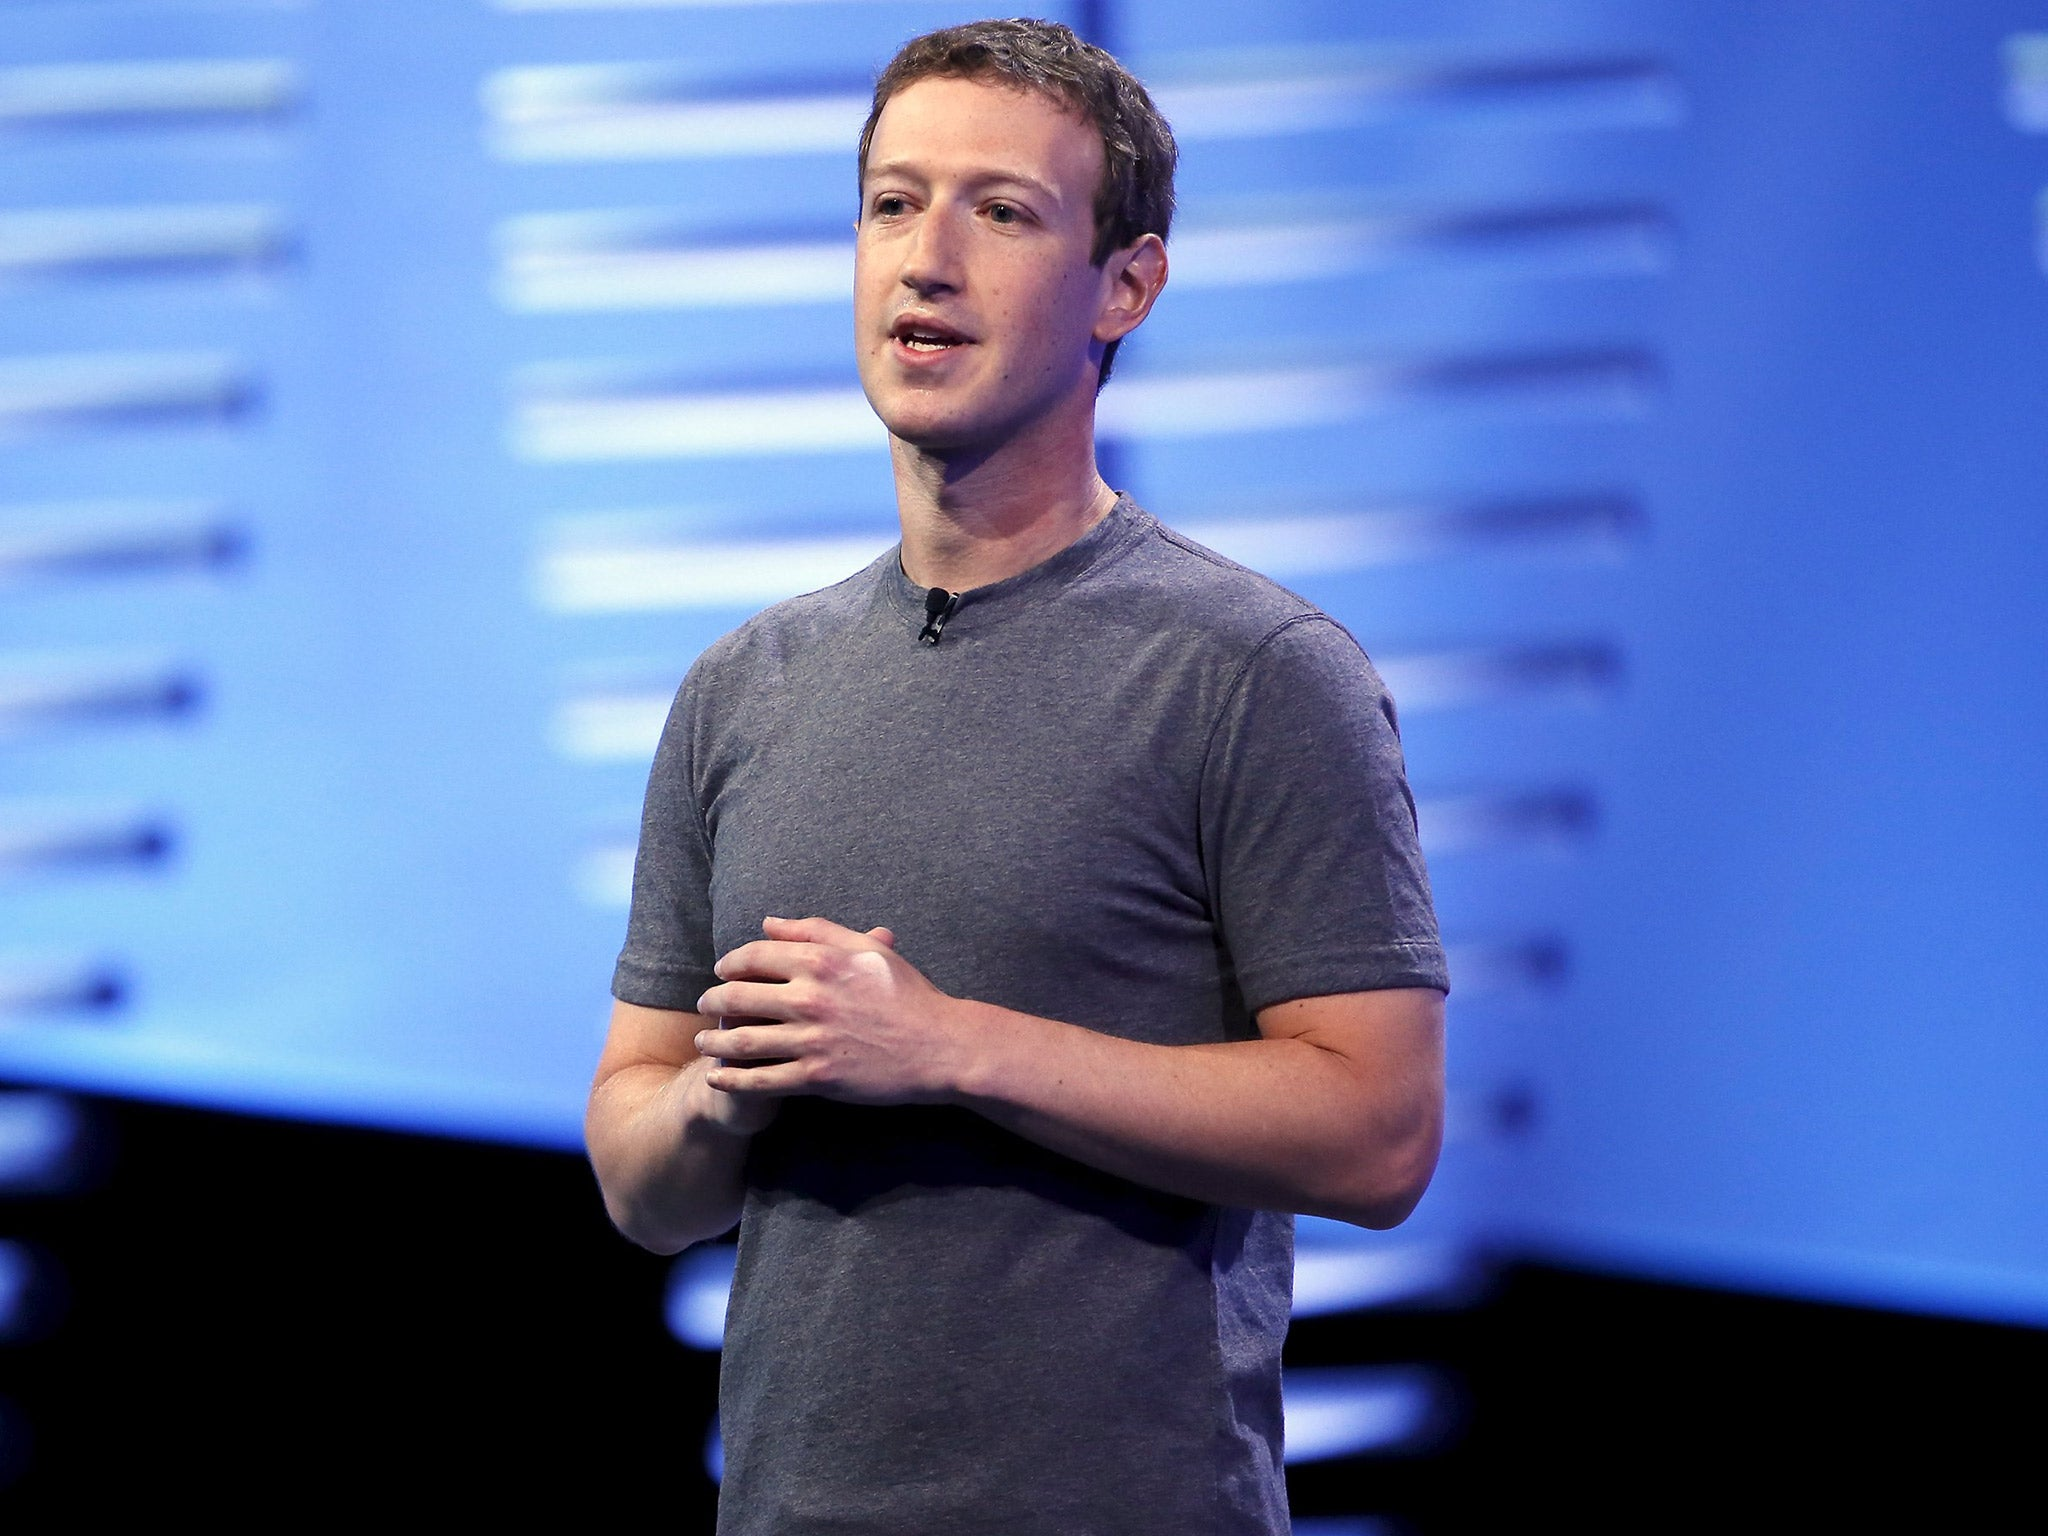 Mark Zuckerberg Claims Cloud Computing Is Too Expensive